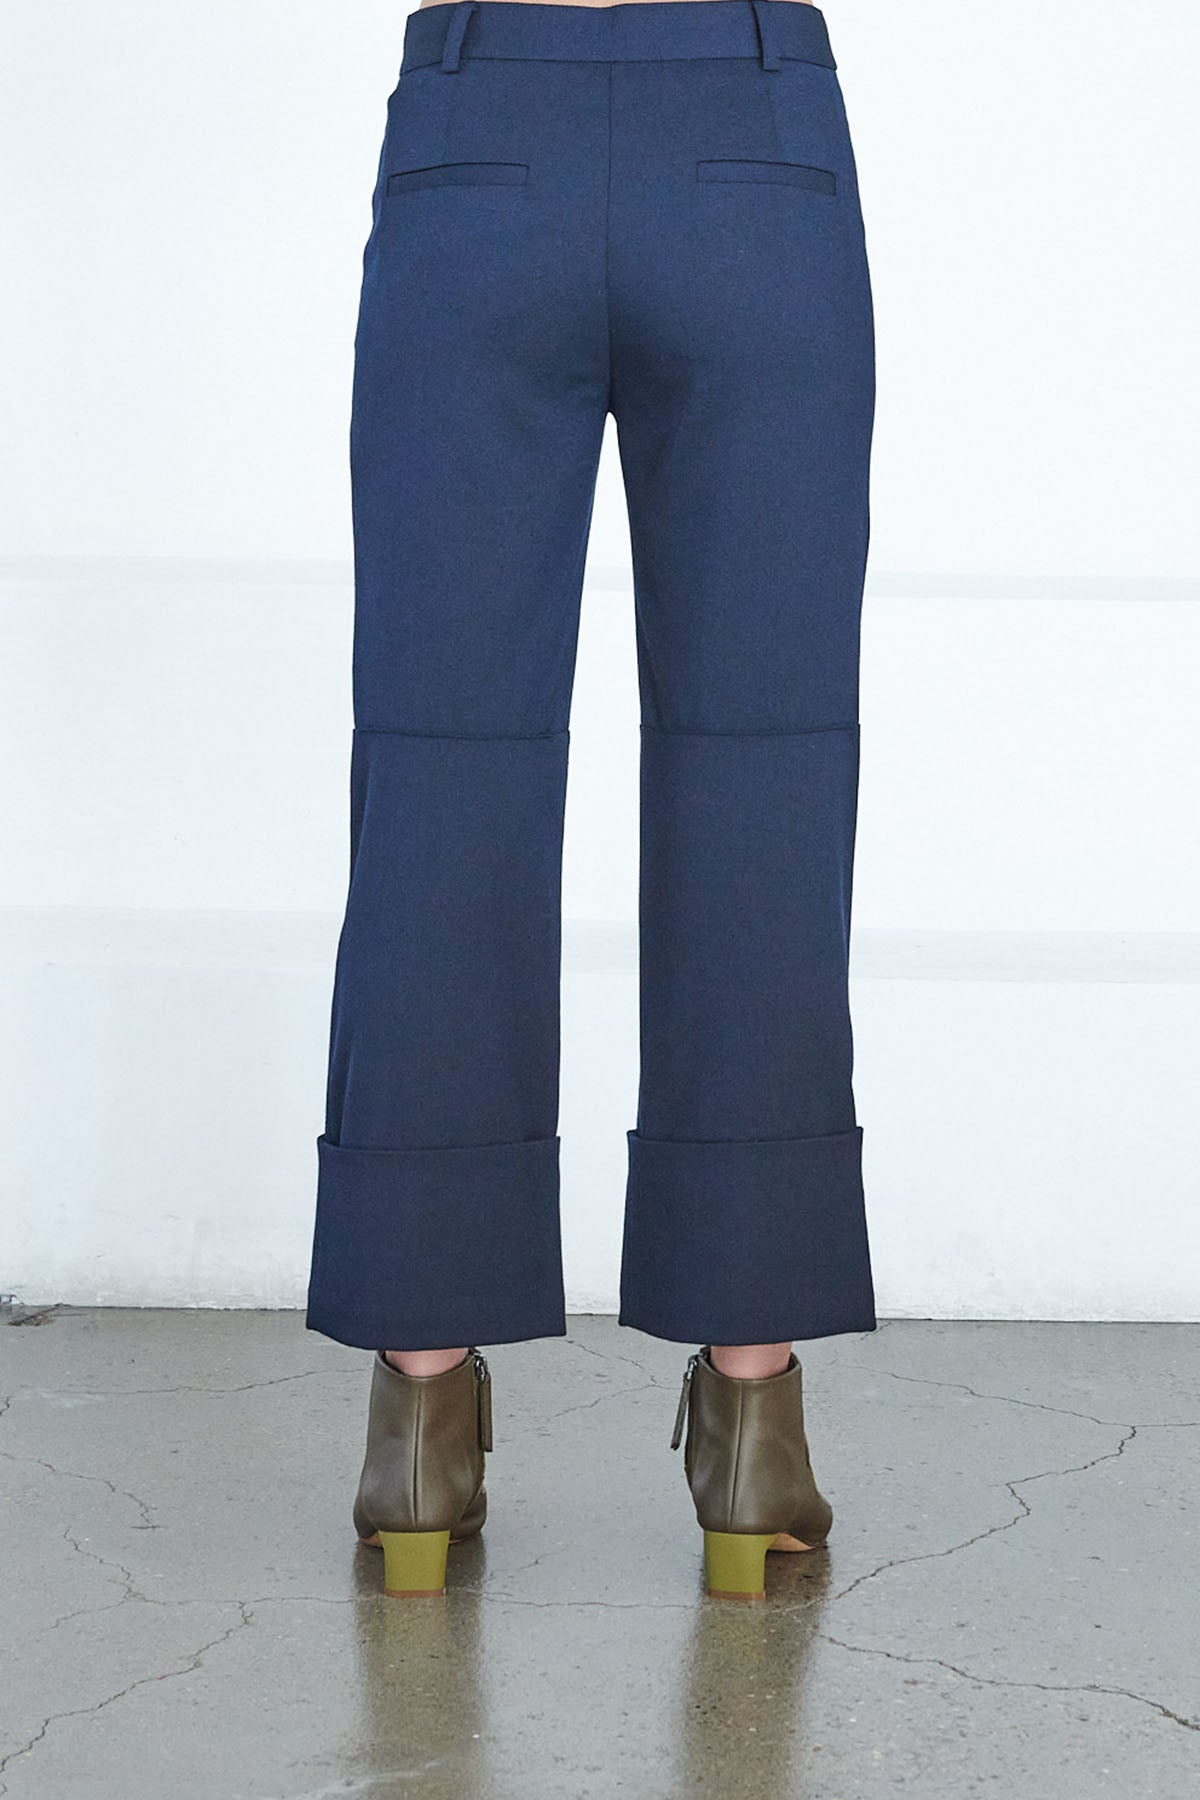 TIBI - luka cropped pant, midnight